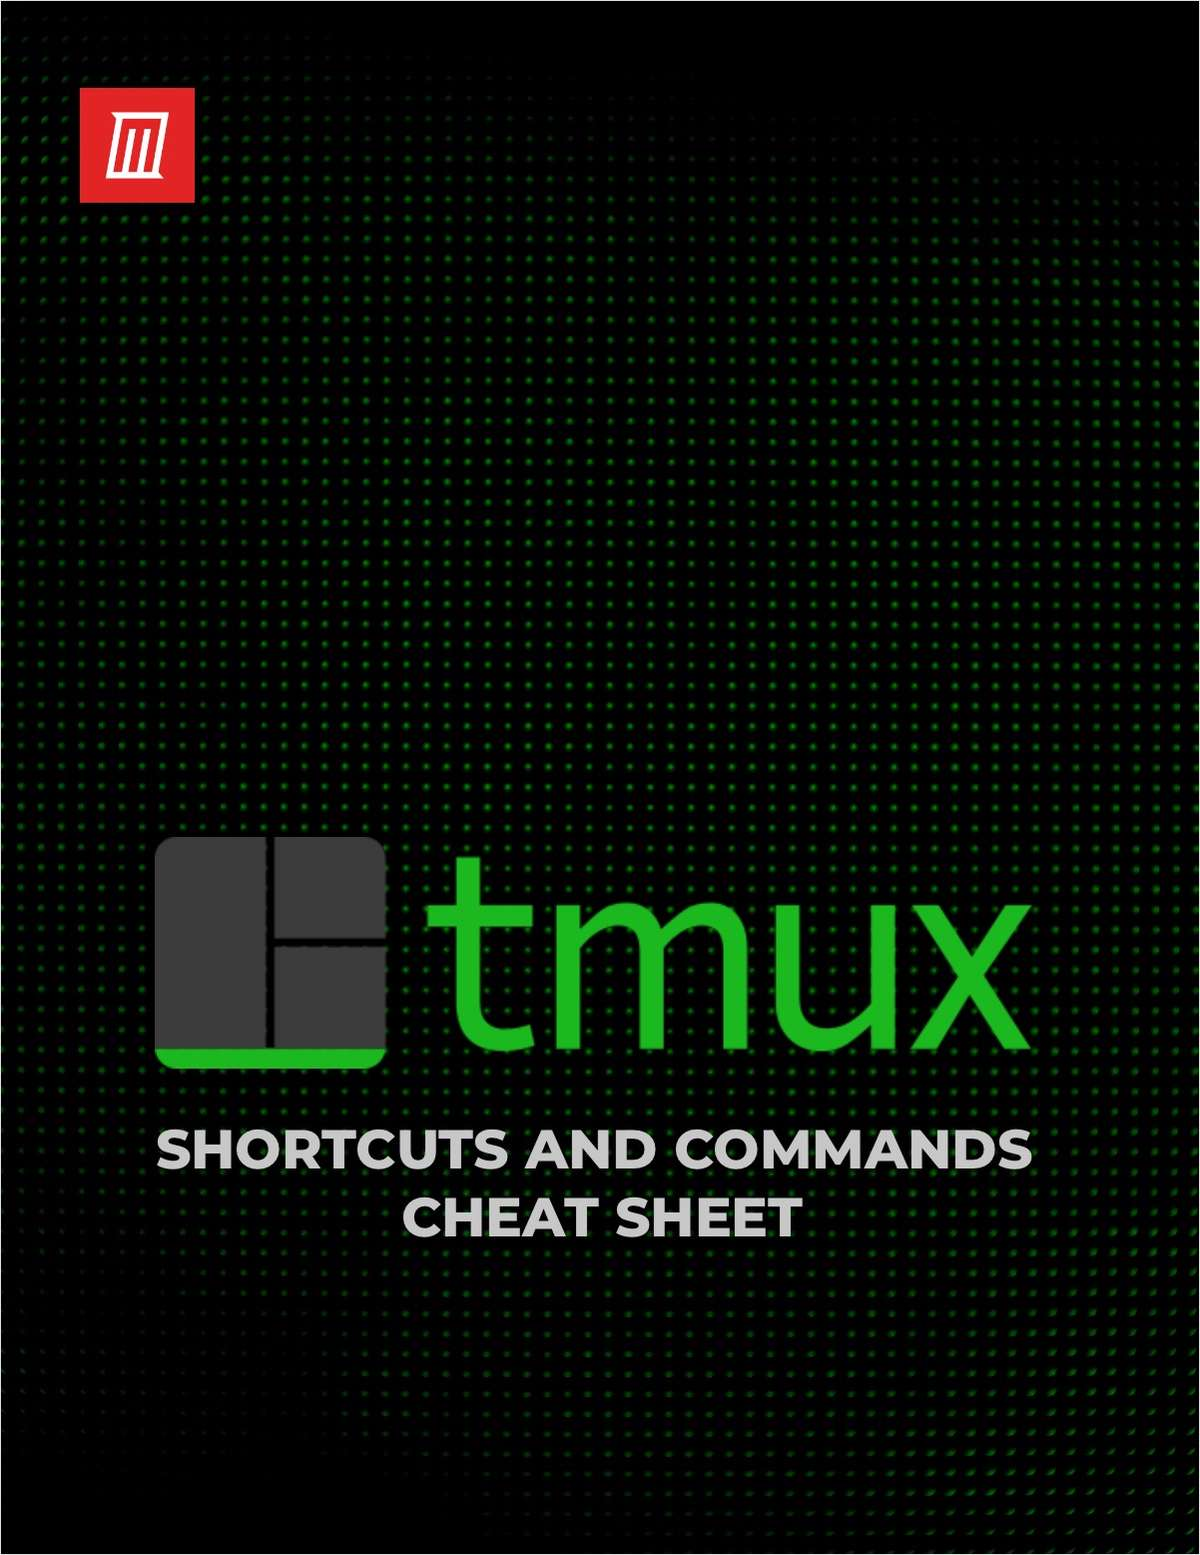 Key Tmux Shortcuts and Commands to Know